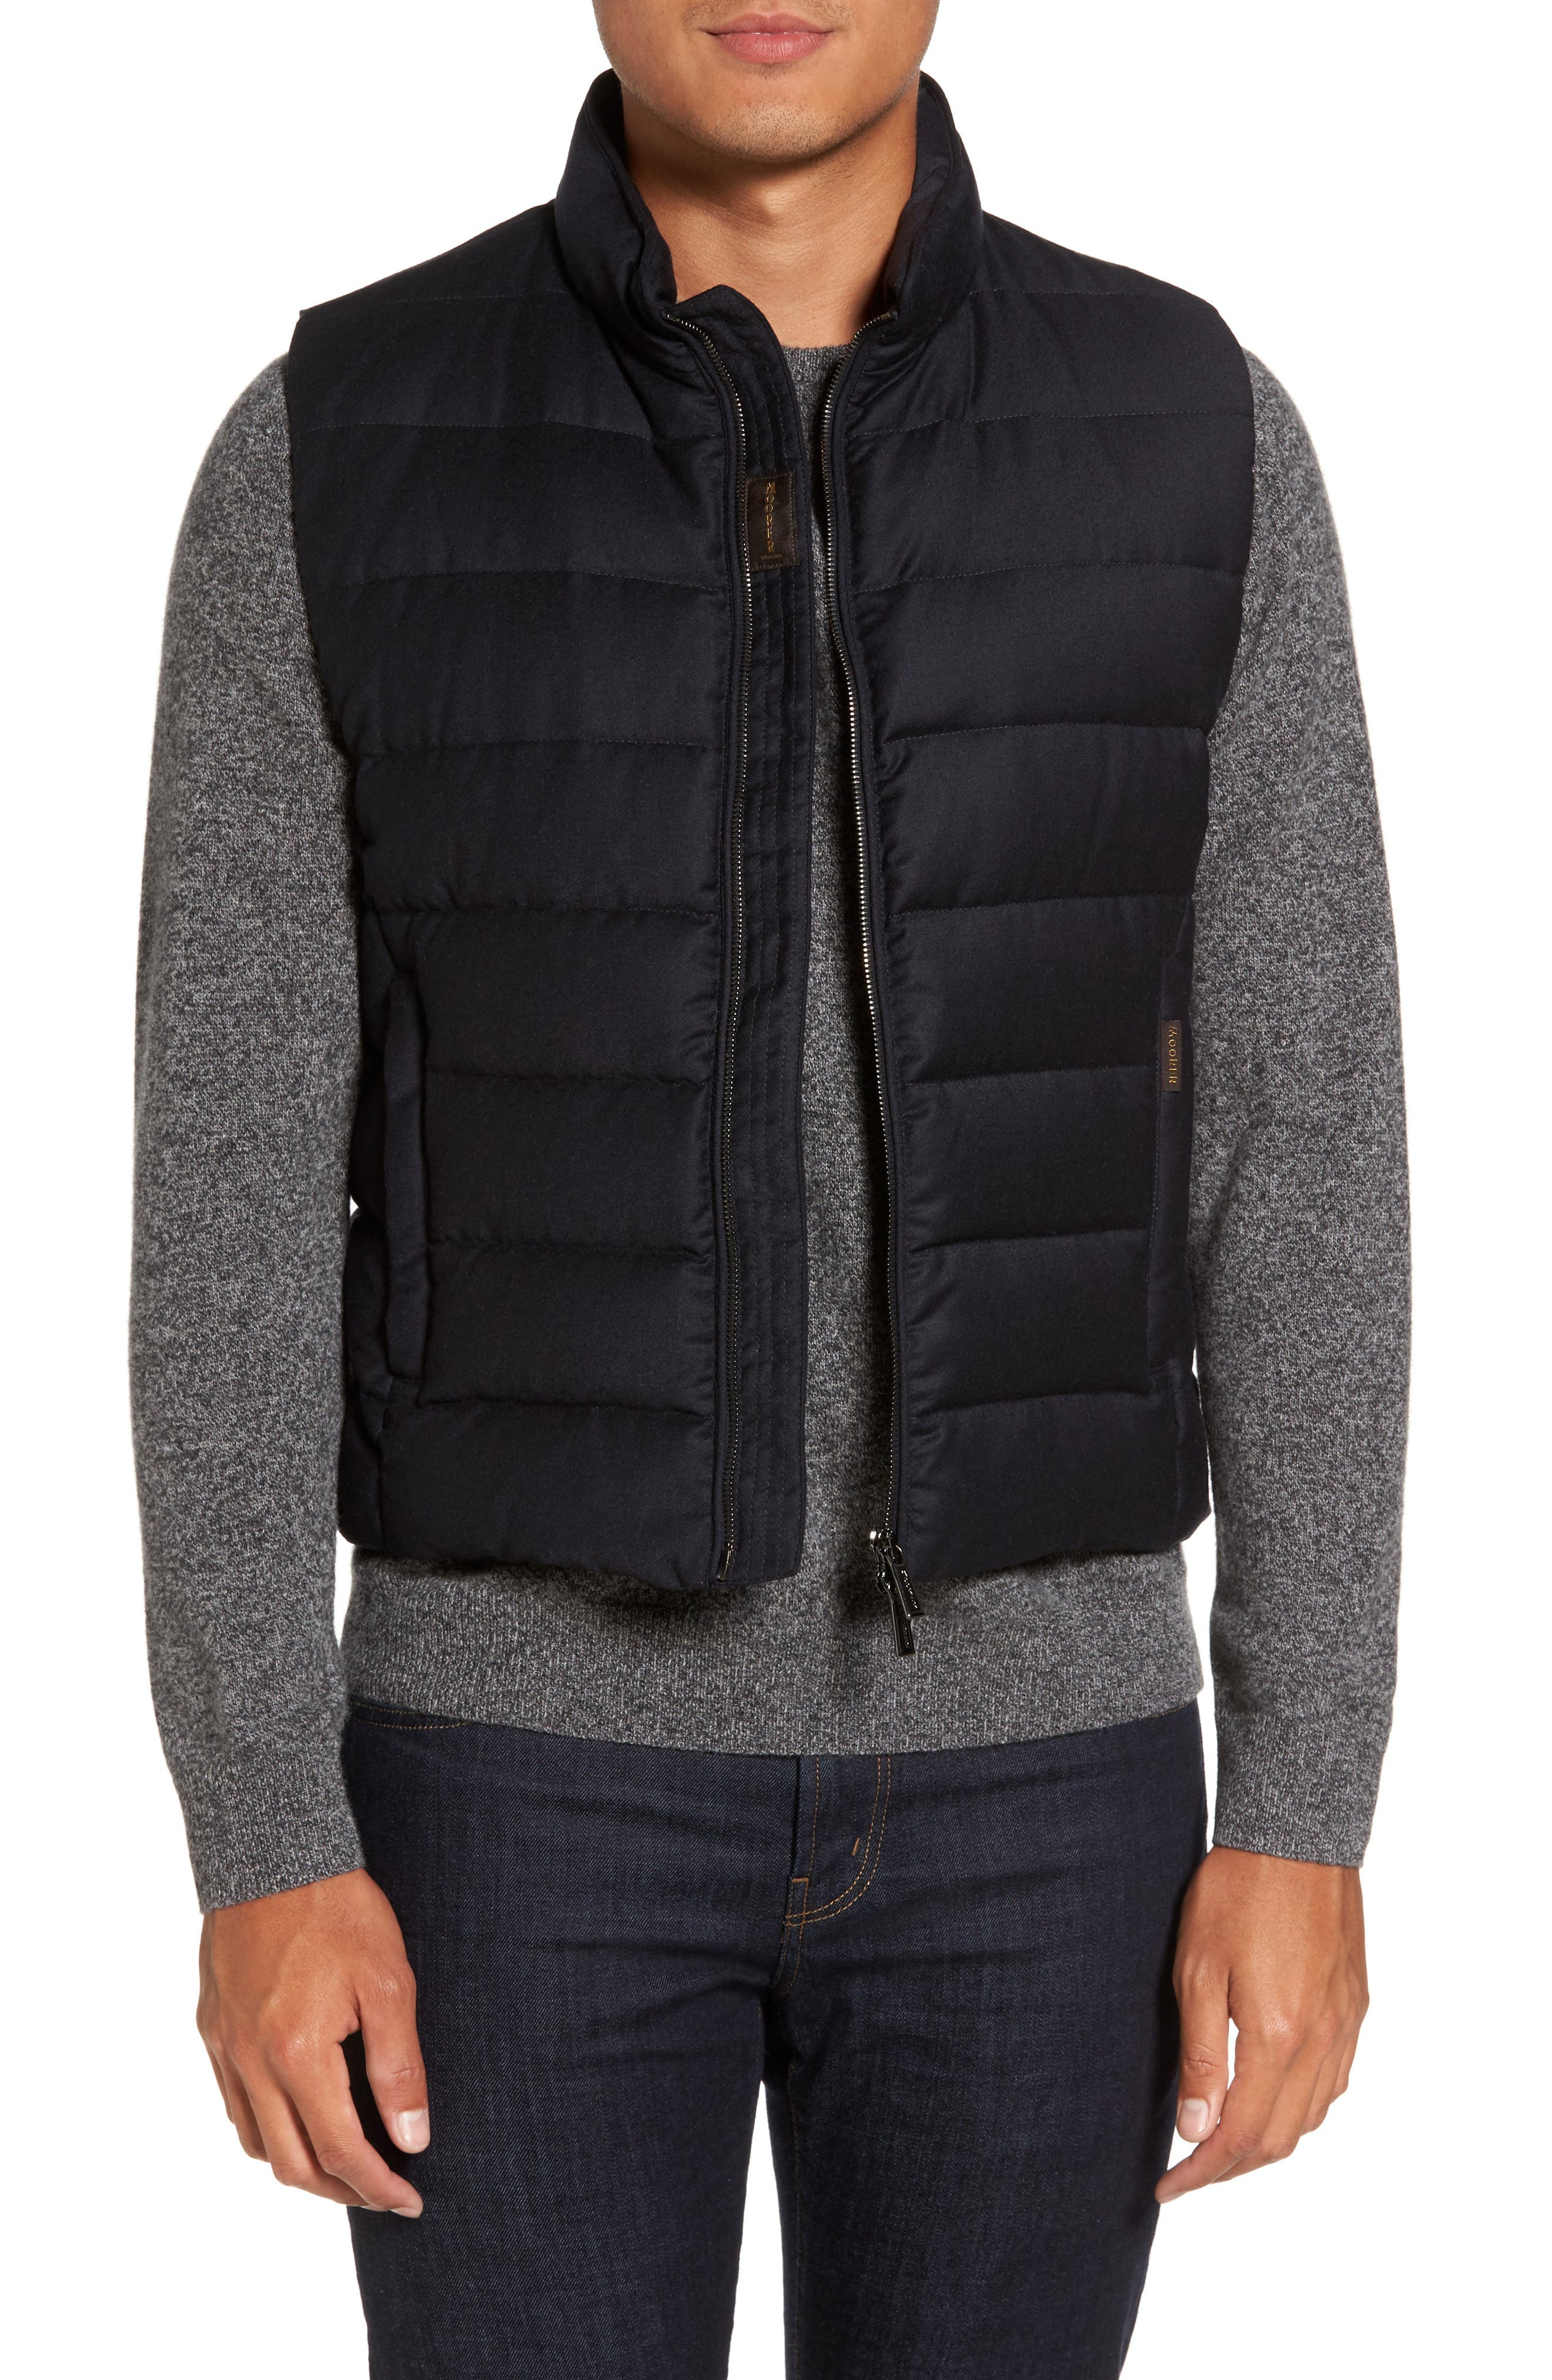 Oliver L Wool & Cashmere Flannel Waterproof Vest,                             Main thumbnail 1, color,                             402